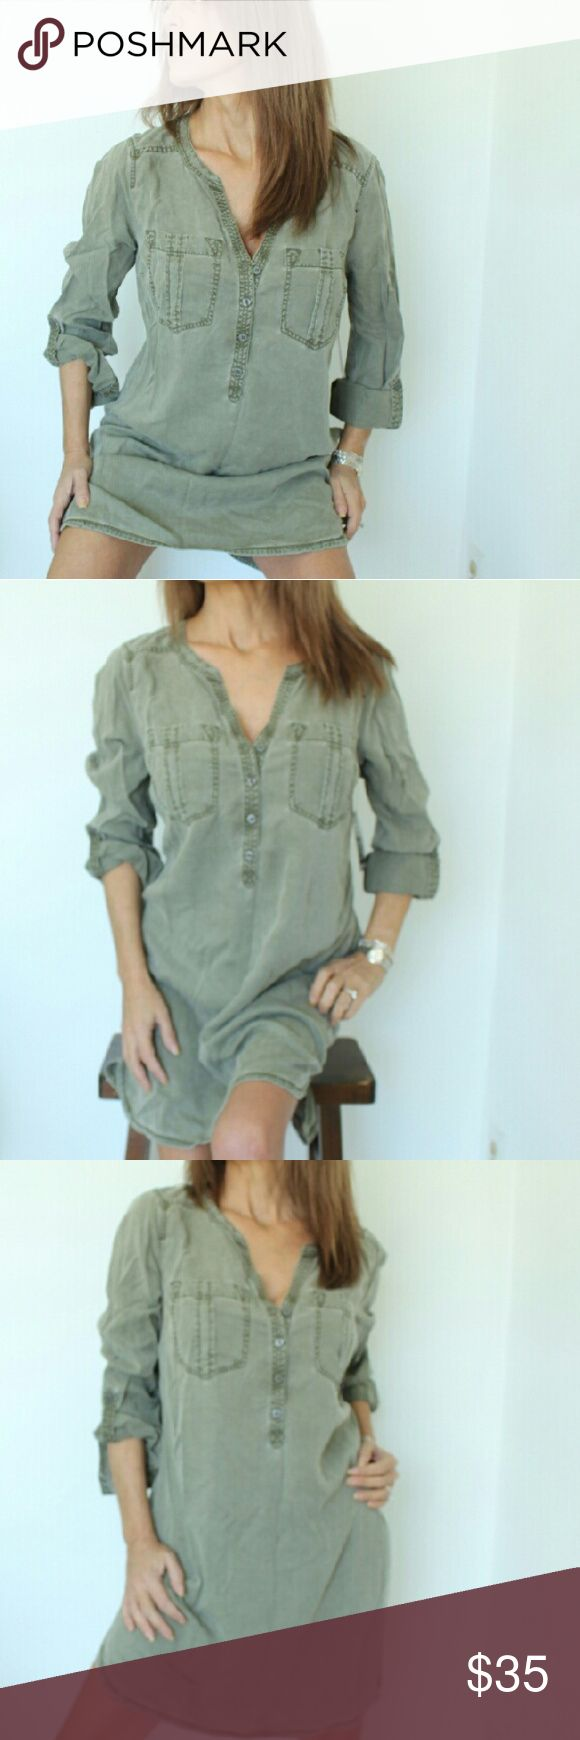 NWT Express khaki shirt dress Super cute shirt dress. NWT. Khaki green with button front.Cuff sleeves and a rounded hemline. NWT Express Dresses Mini